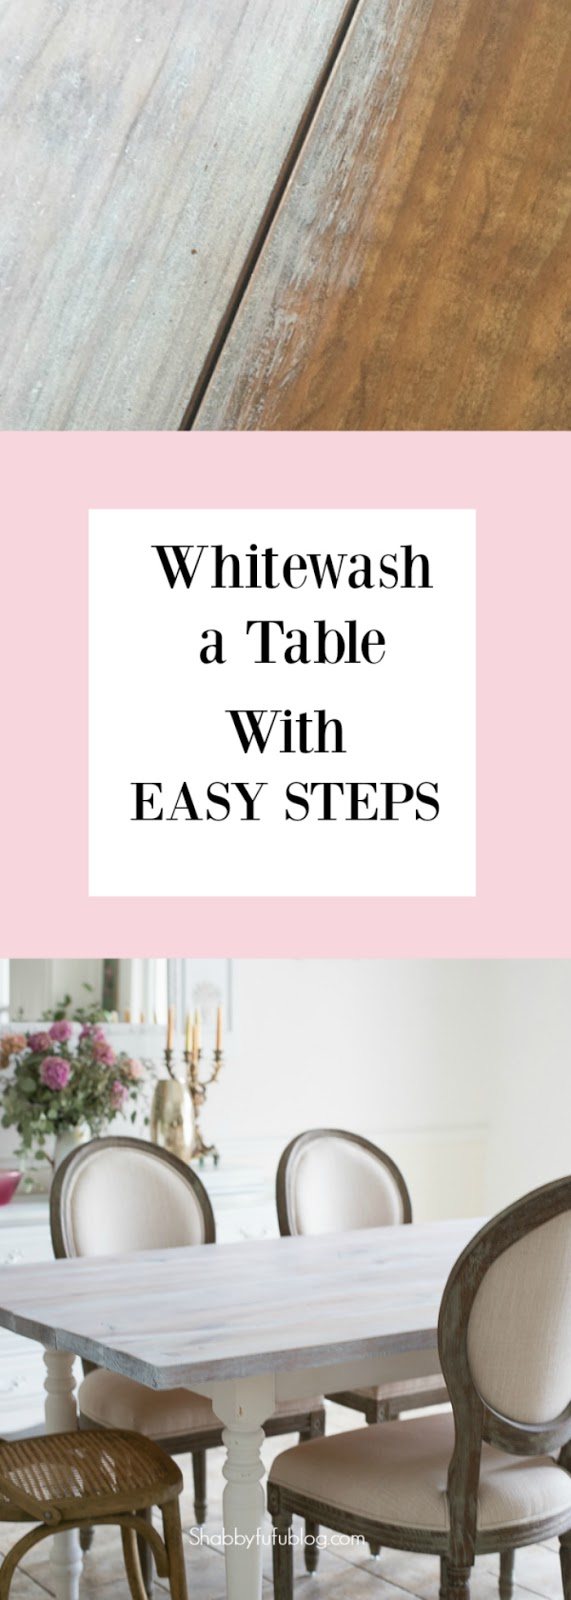 Superb how to whitewash a table